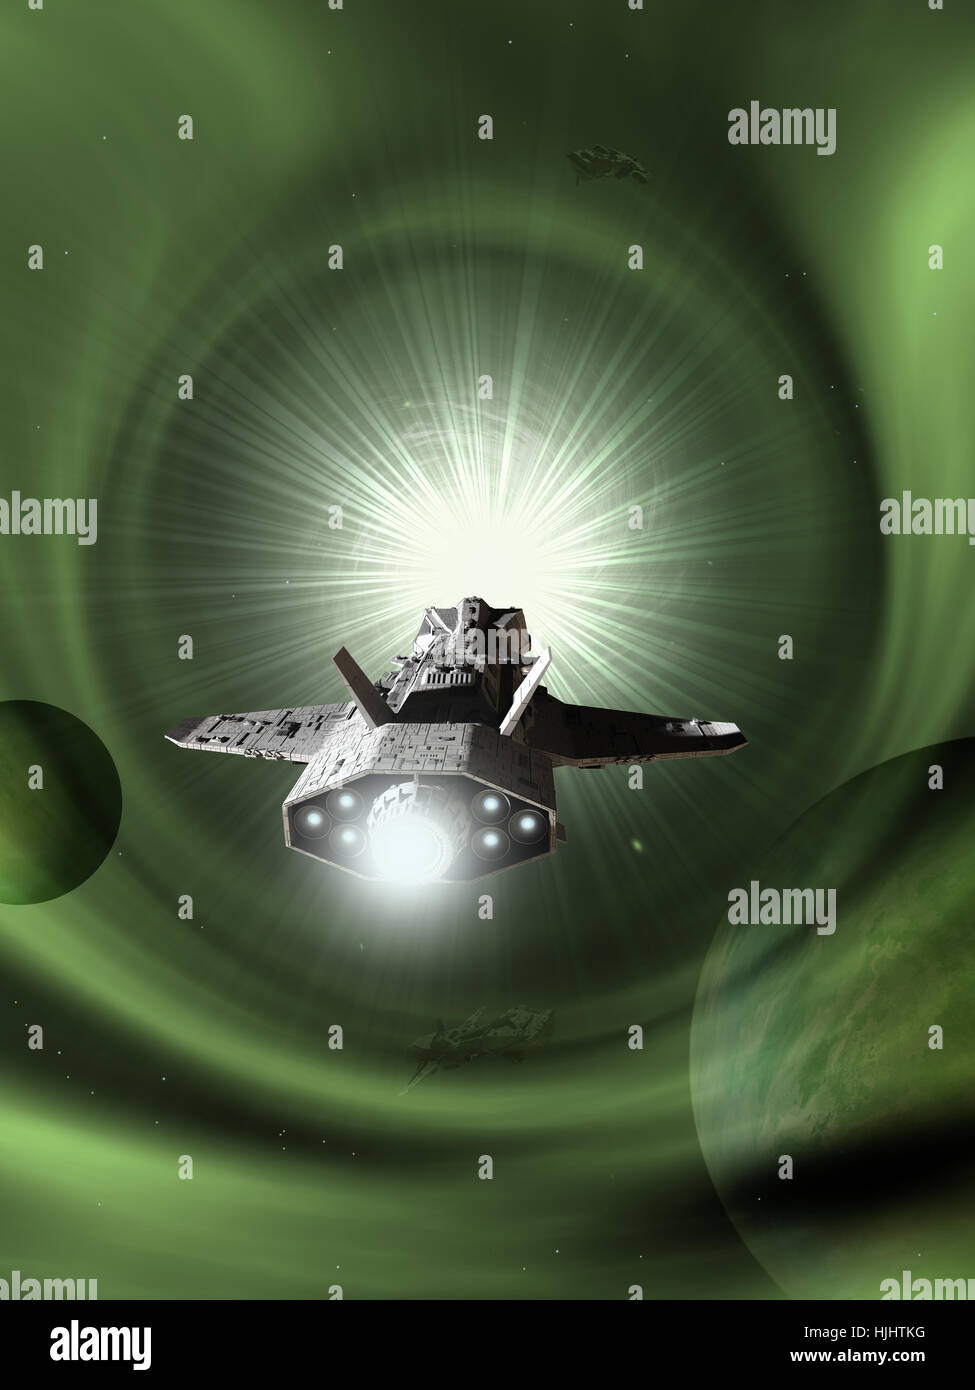 Interplanetary Spaceship Approaching Light Speed - science fiction illustration - Stock Image